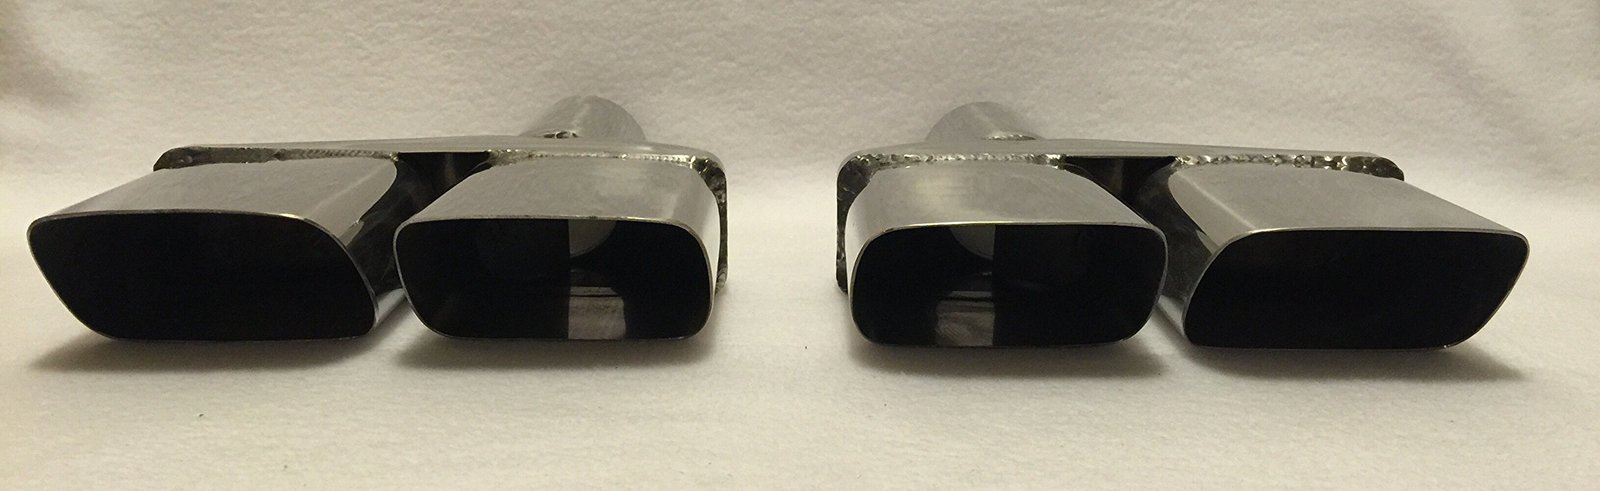 "2.5"" POLISHED STAINLESS STEEL CHALLENGER DUAL EXHAUST TIPS - PAIR"